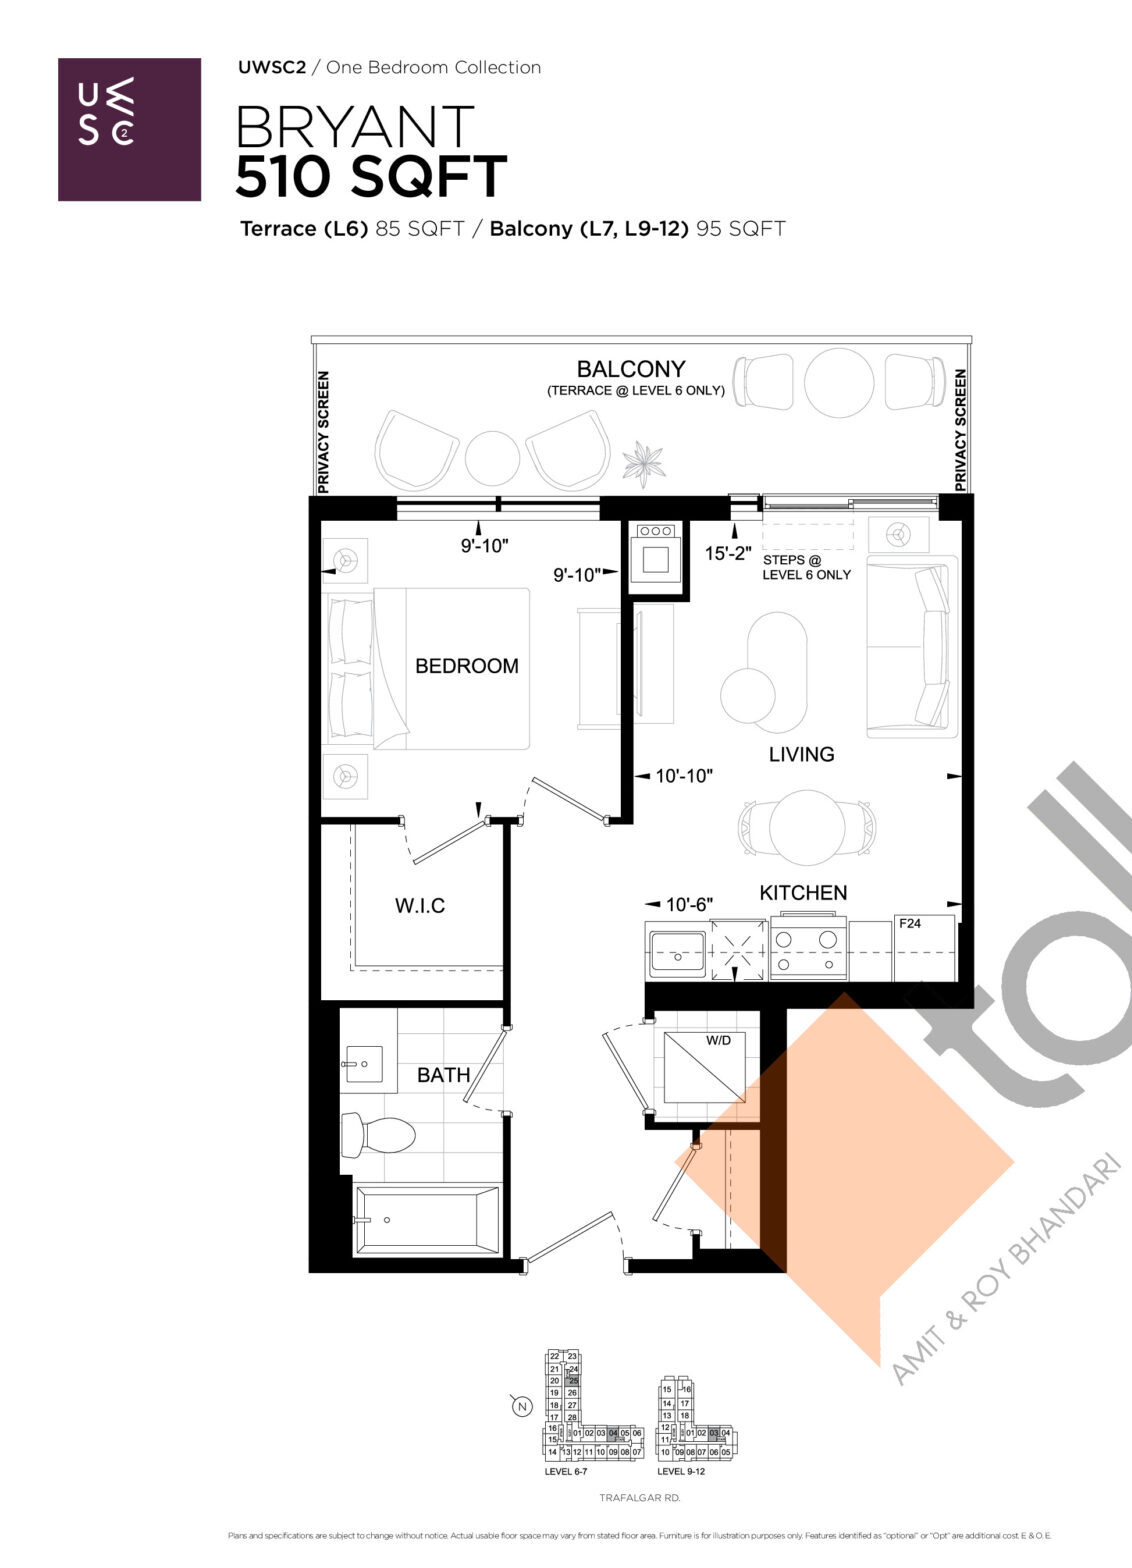 Bryant Floor Plan at Upper West Side Condos 2 - 510 sq.ft